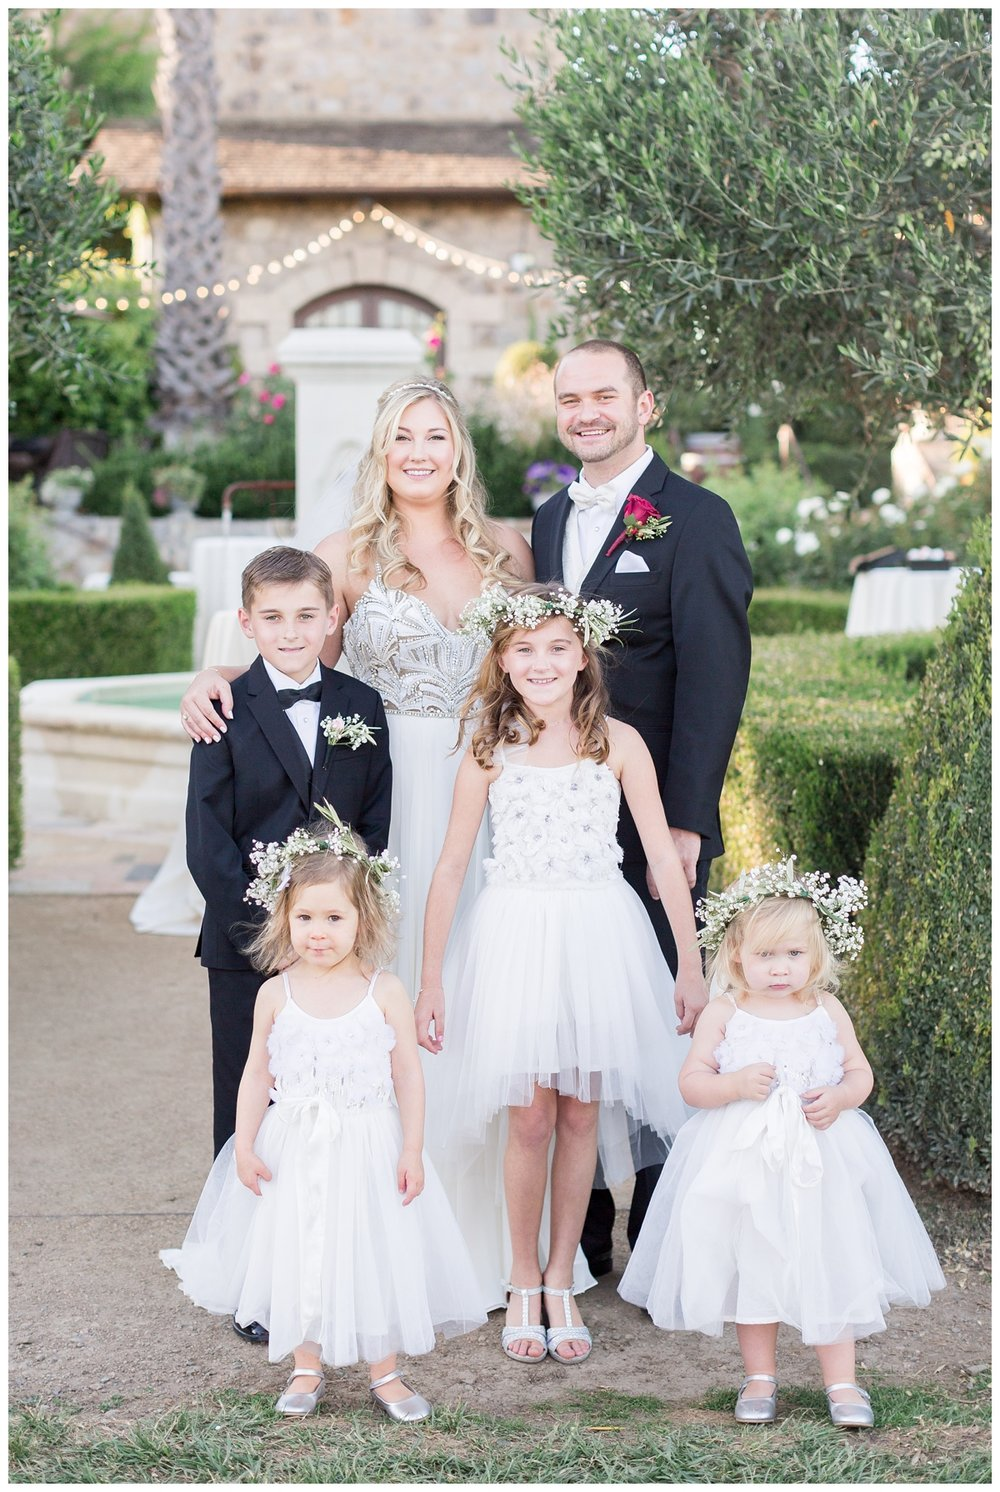 bride and groom with their ring bearers and flower girl at their destination Napa Valley wedding